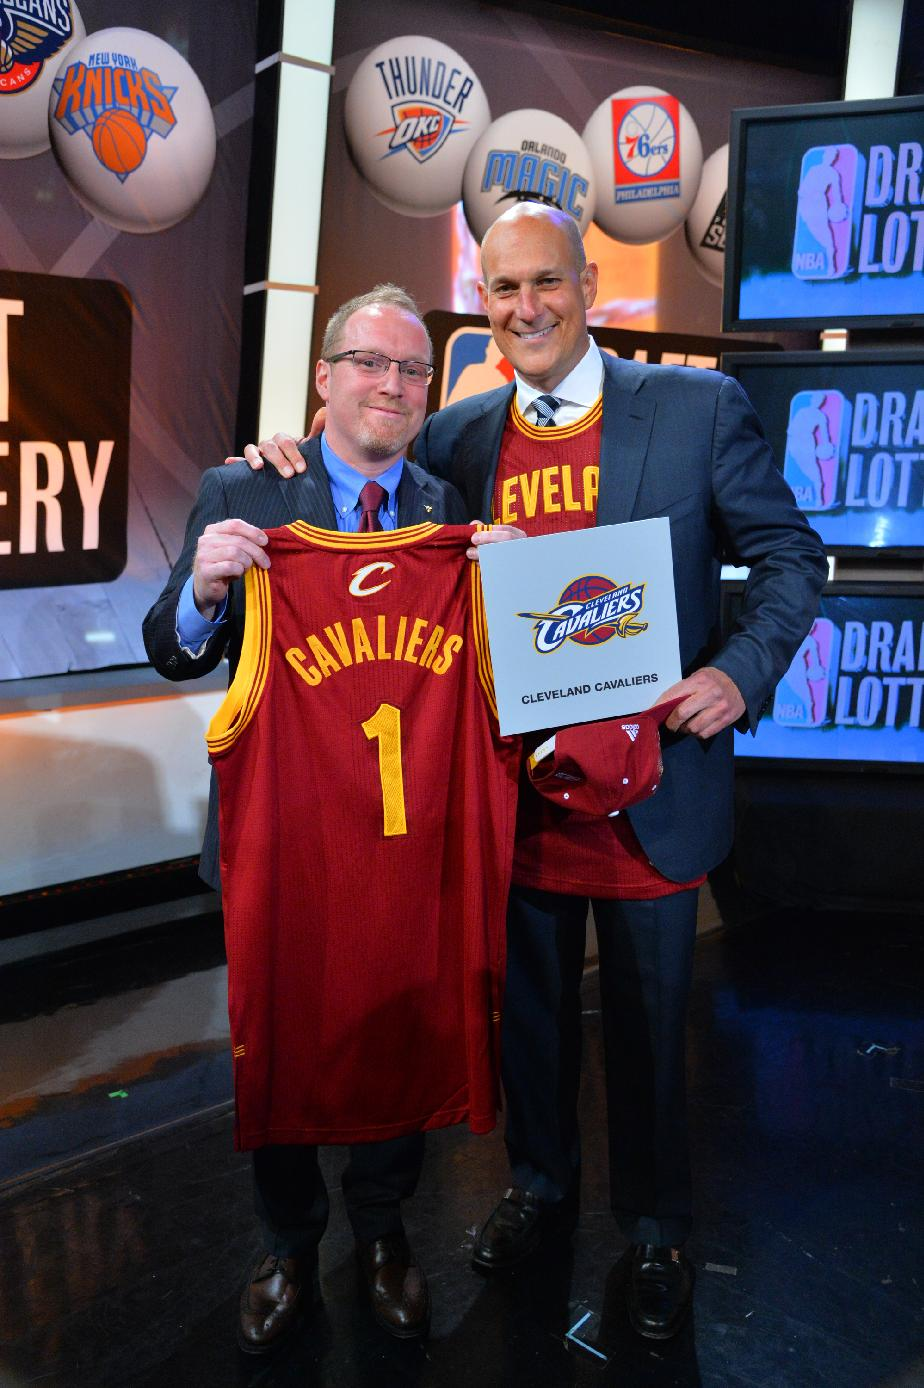 Cleveland Cavaliers win 2014 NBA draft lottery, will make No. 1…